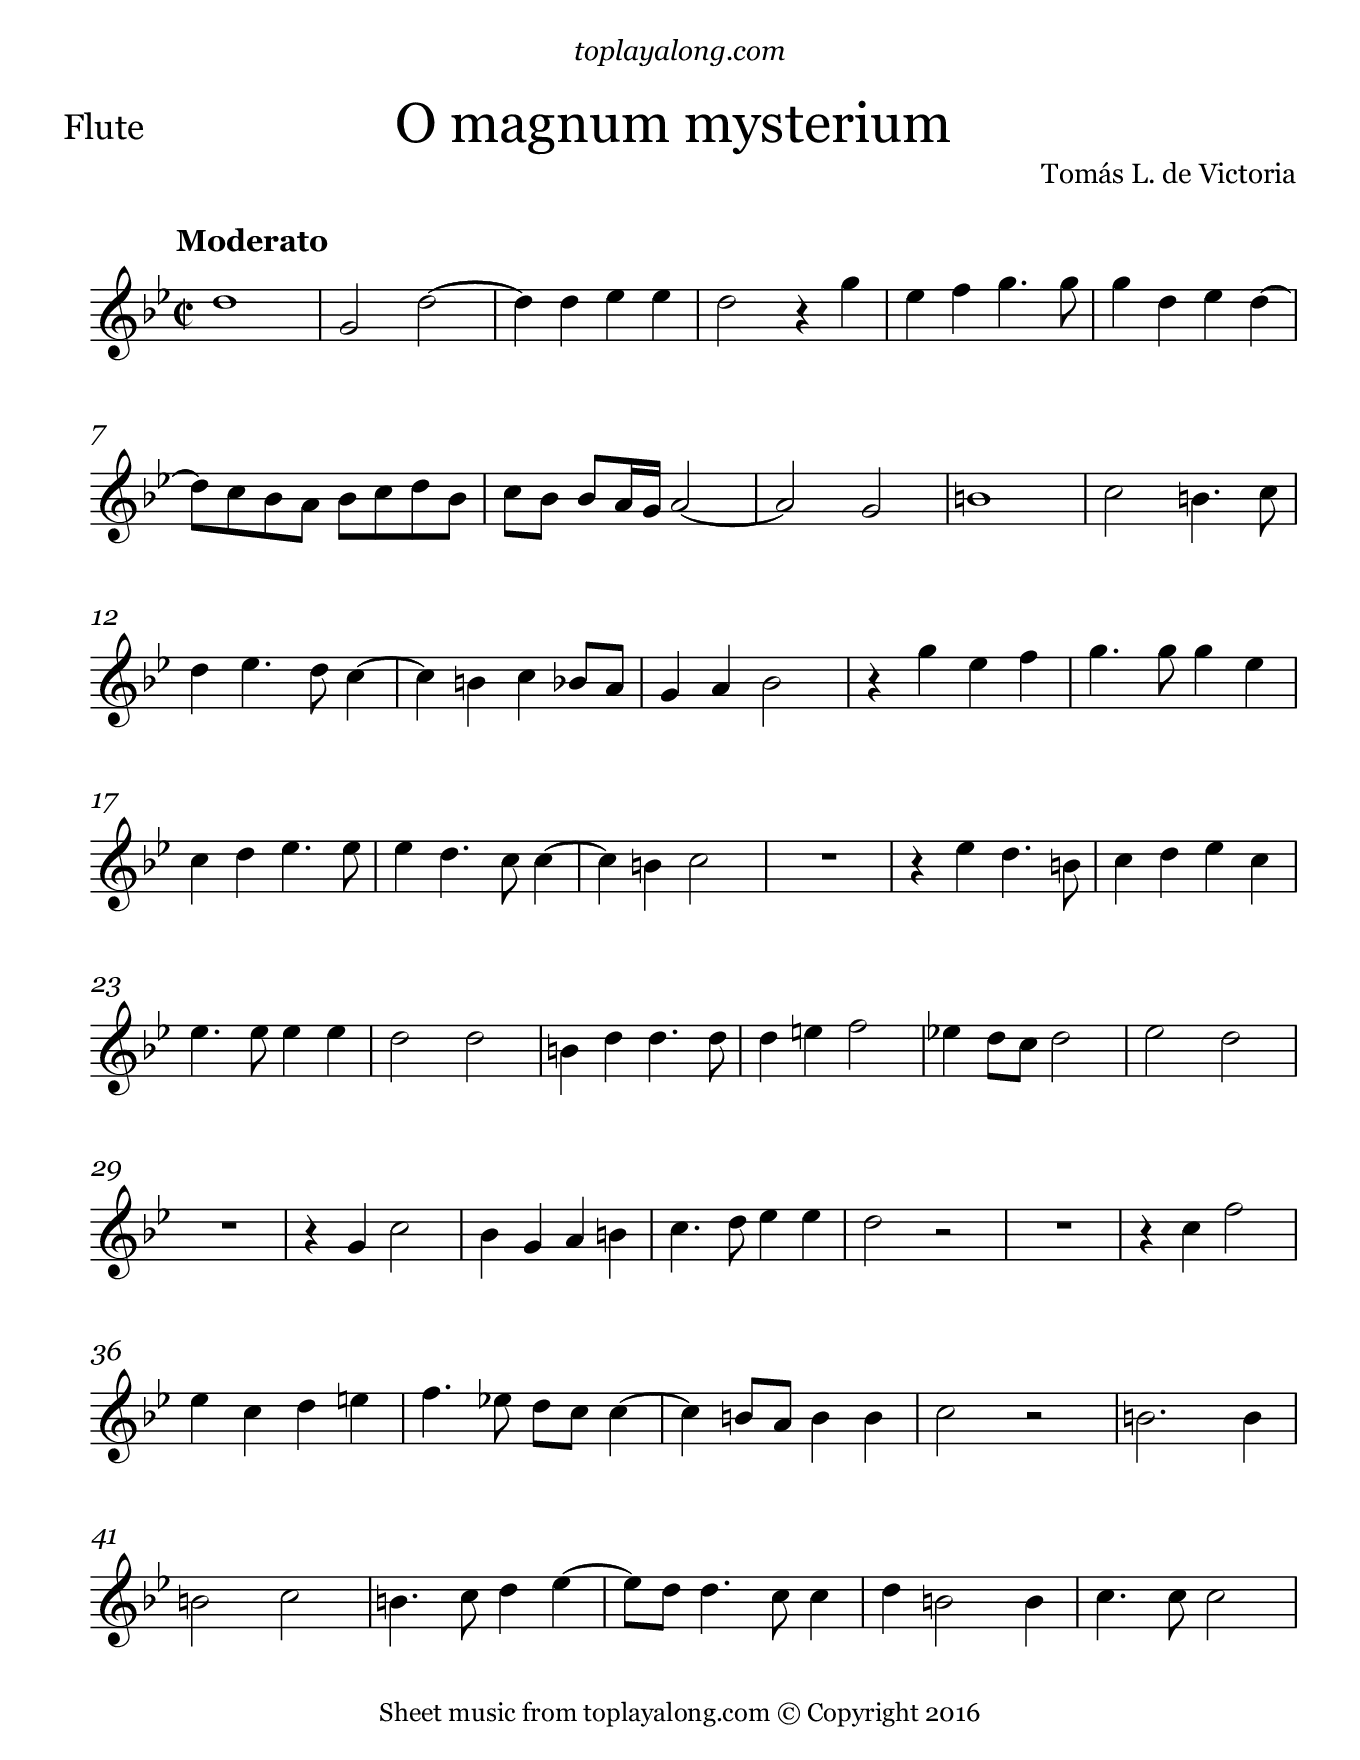 O magnum mysterium by Victoria. Sheet music for Flute, page 1.